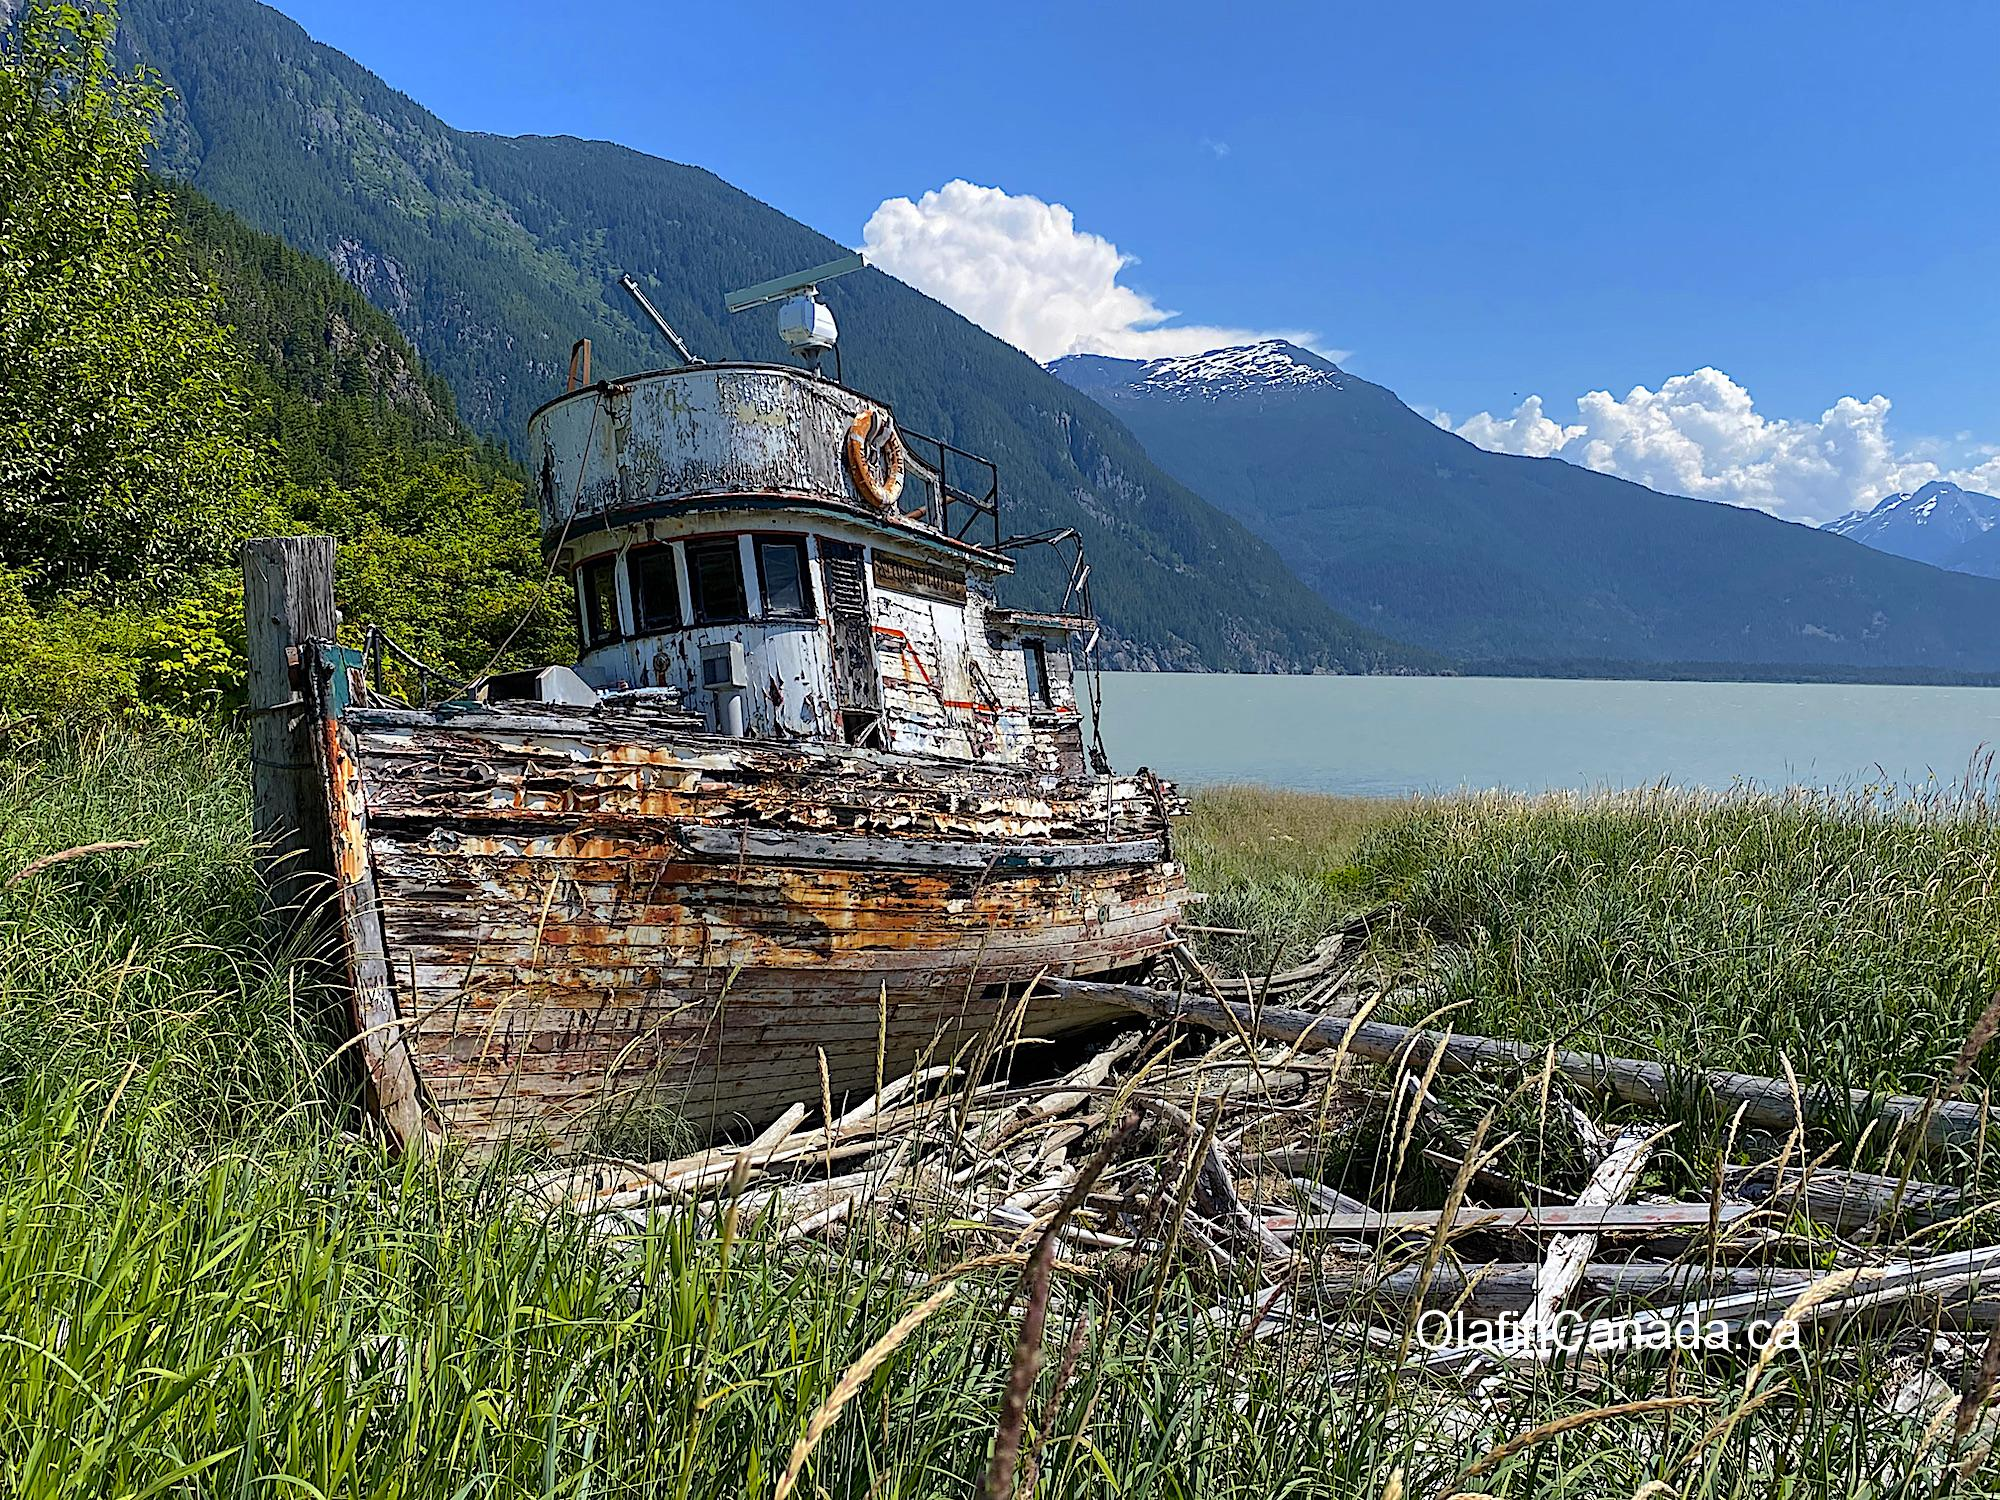 Old boat on the shores of the Tallheo Cannery #olafincanada #britishcolumbia #discoverbc #abandonedbc #tallheocannery #bellacoola #boat